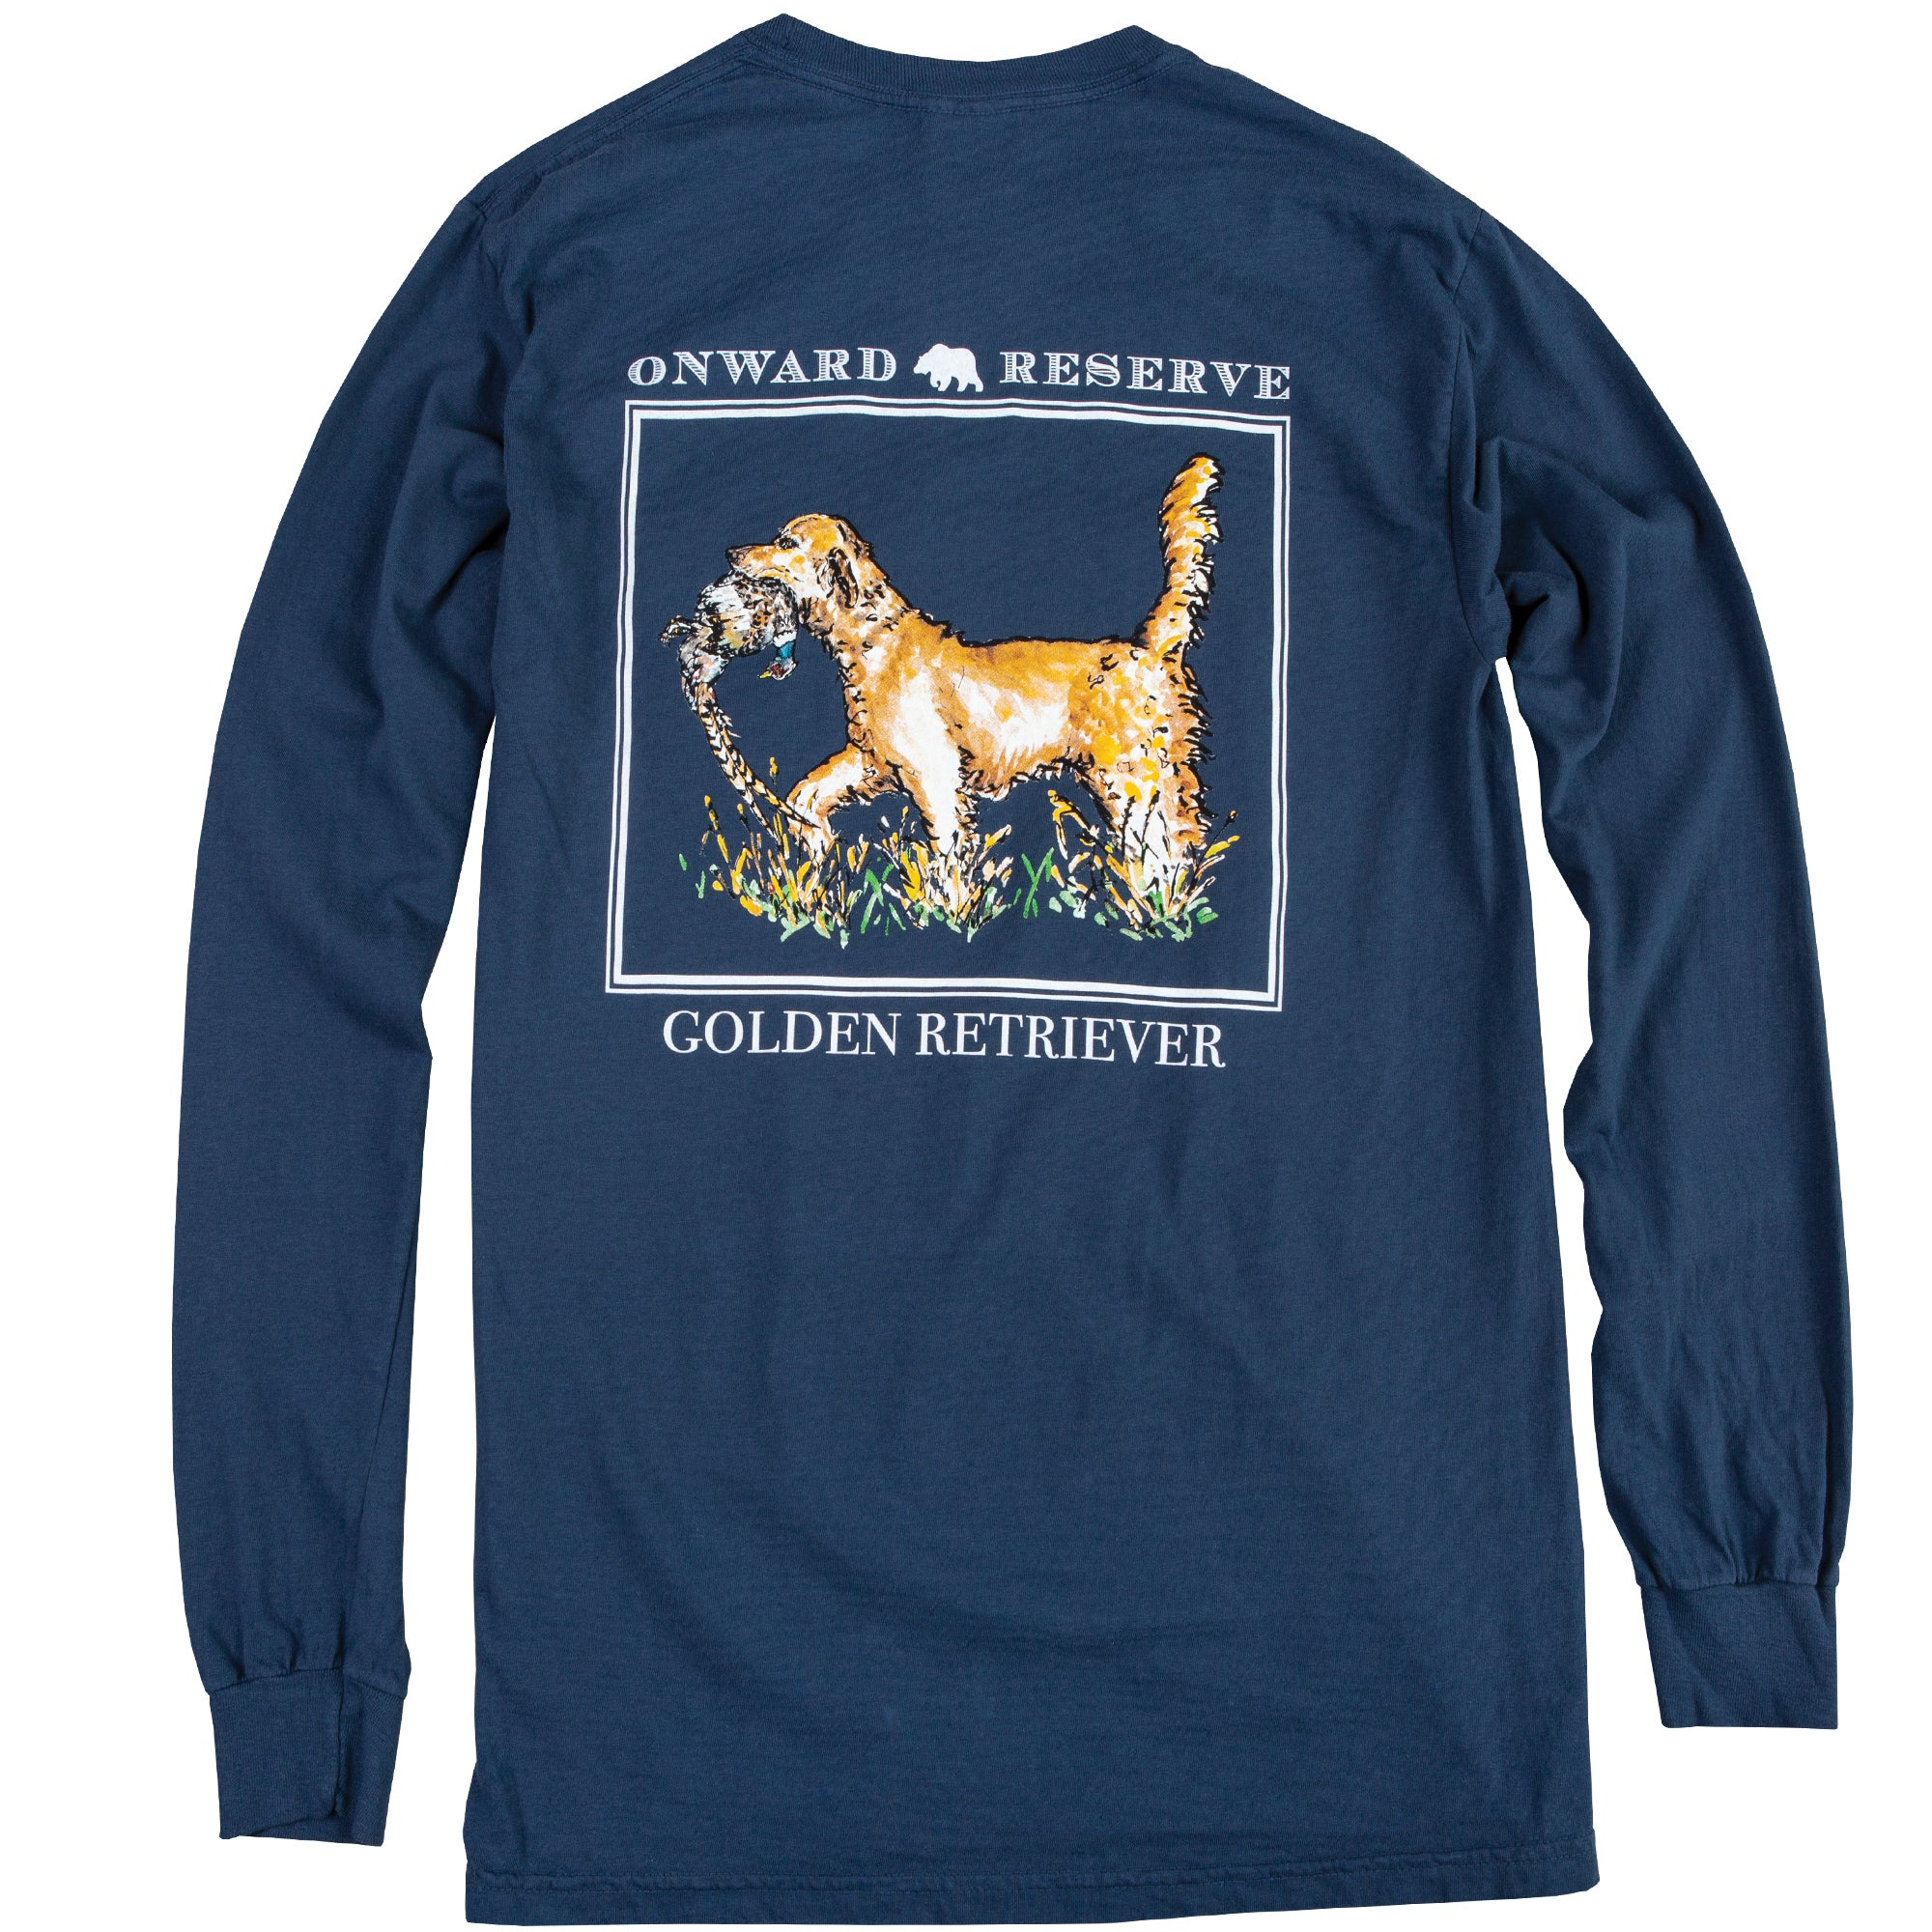 Golden Retriever Long Sleeve Tee - OnwardReserve